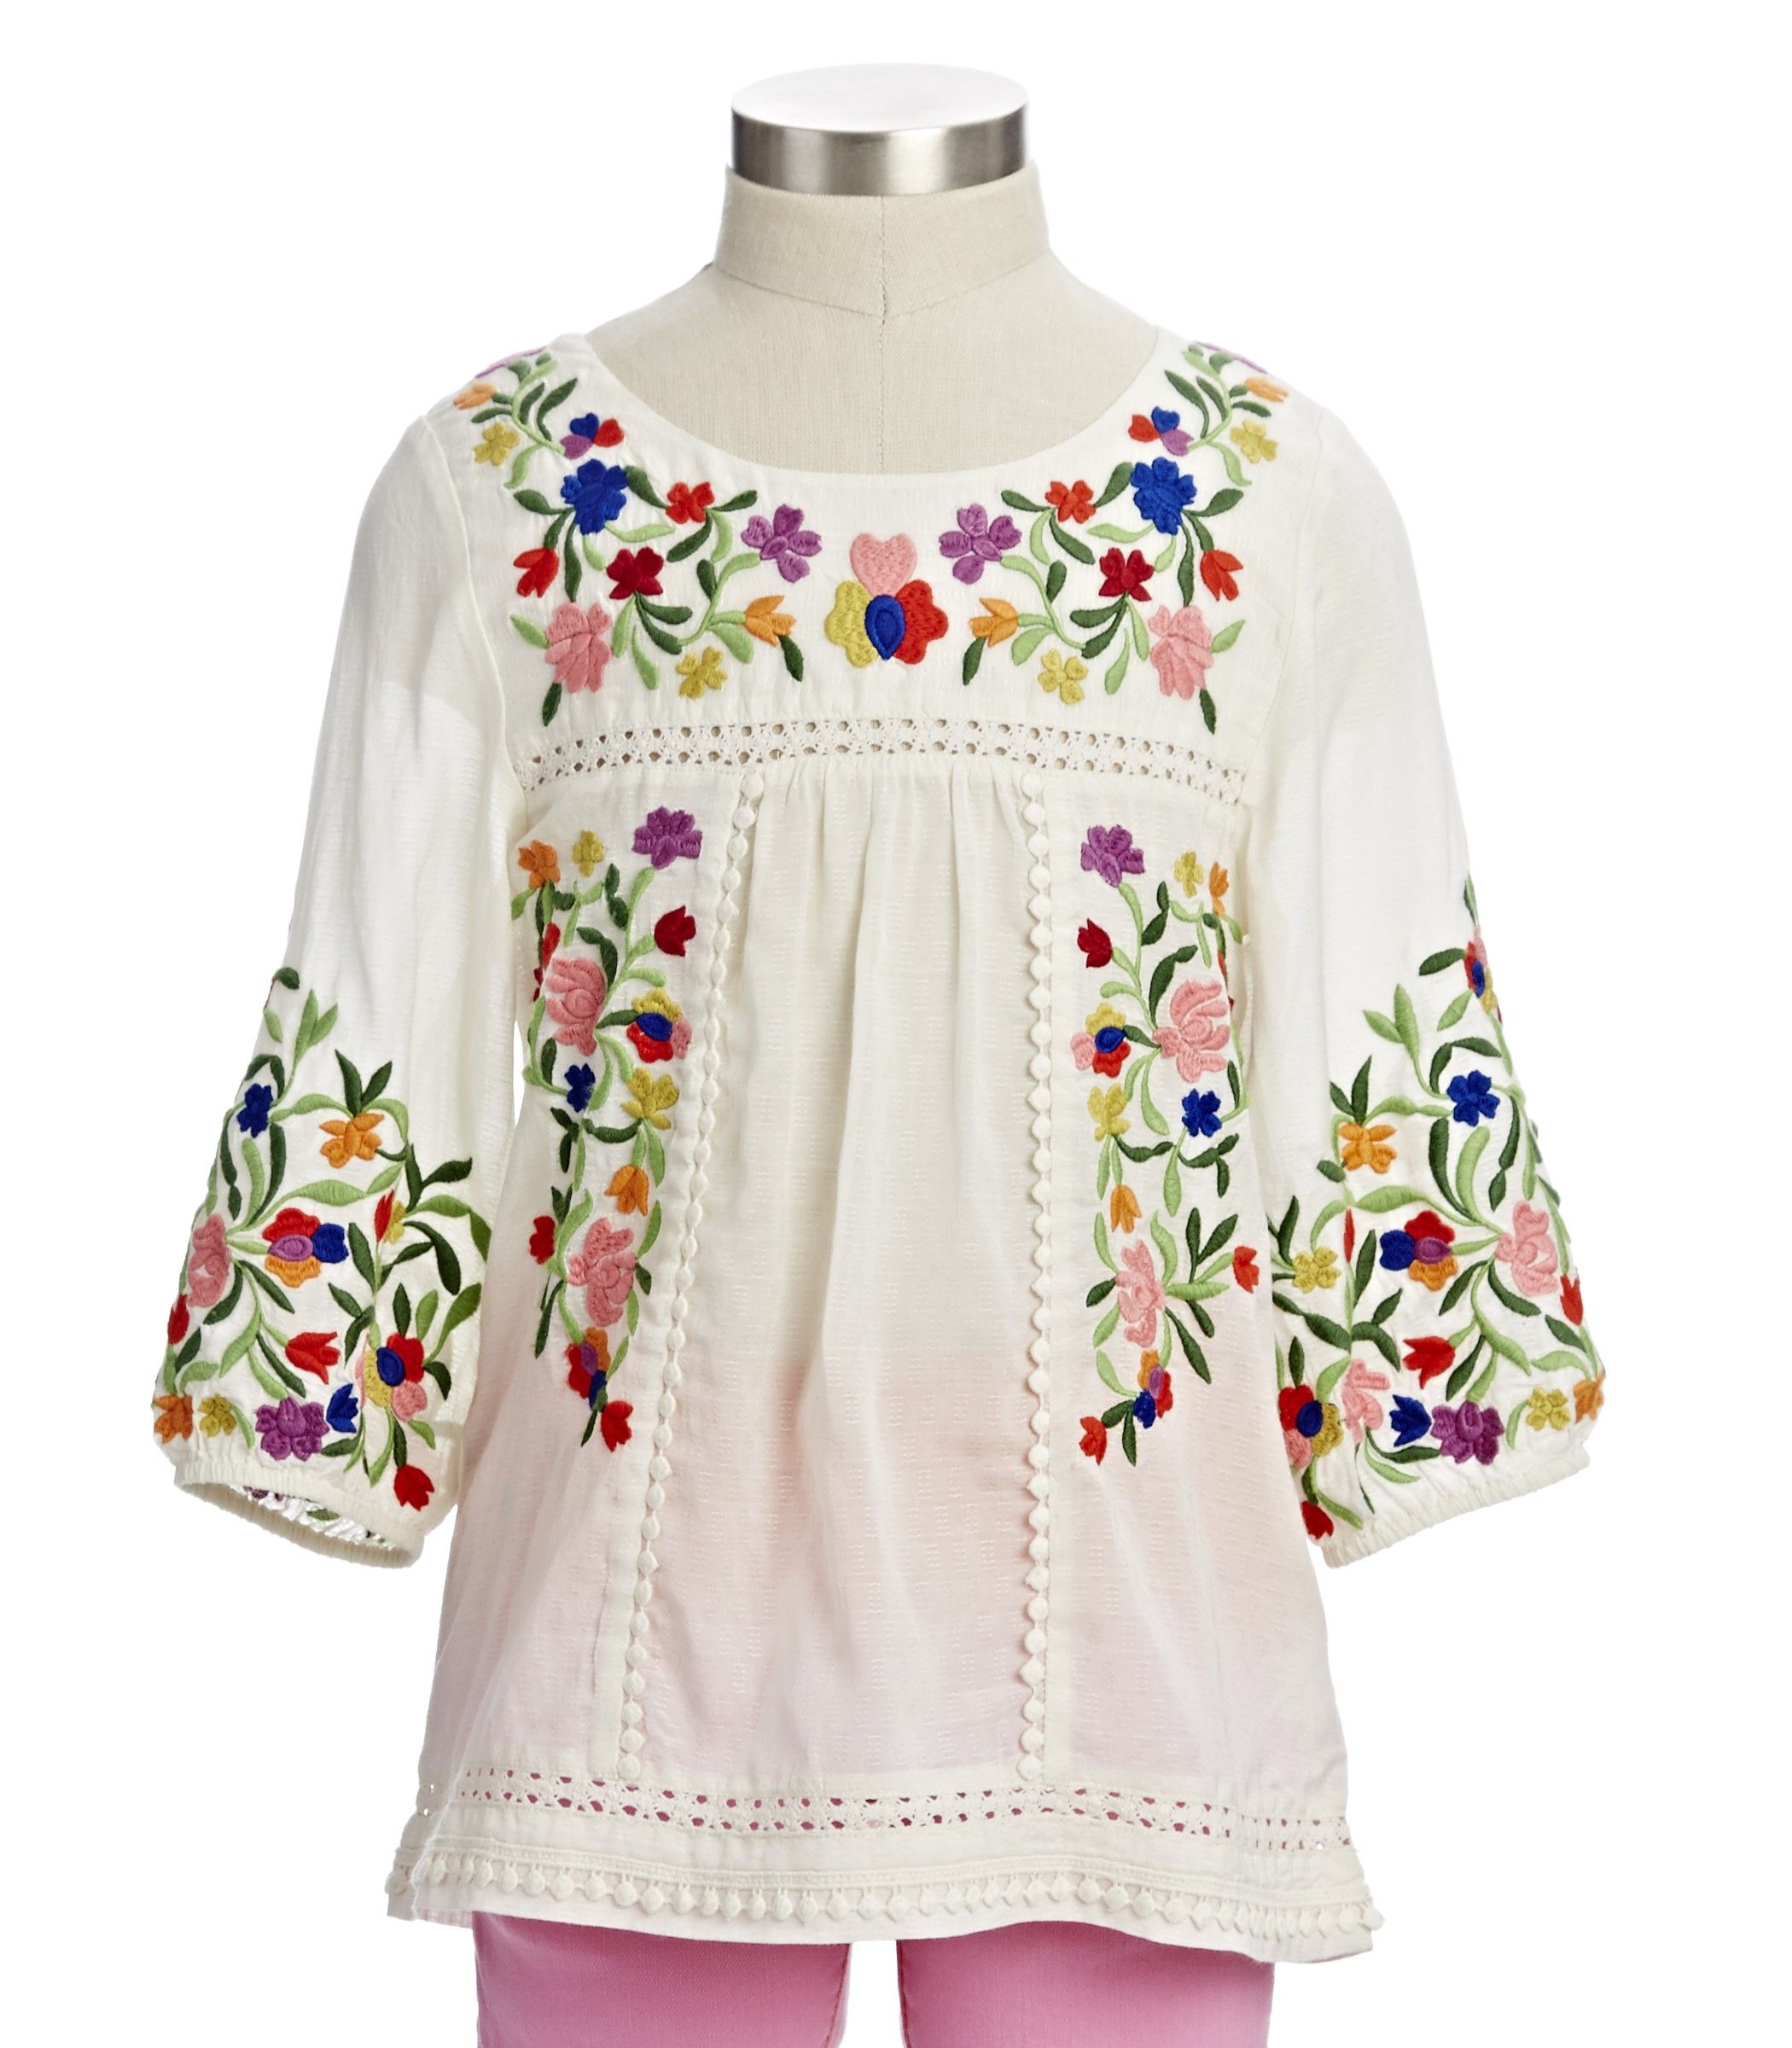 A White Hippie Style Embroidery Top is available at $45 from Pasaboho. ❤  These